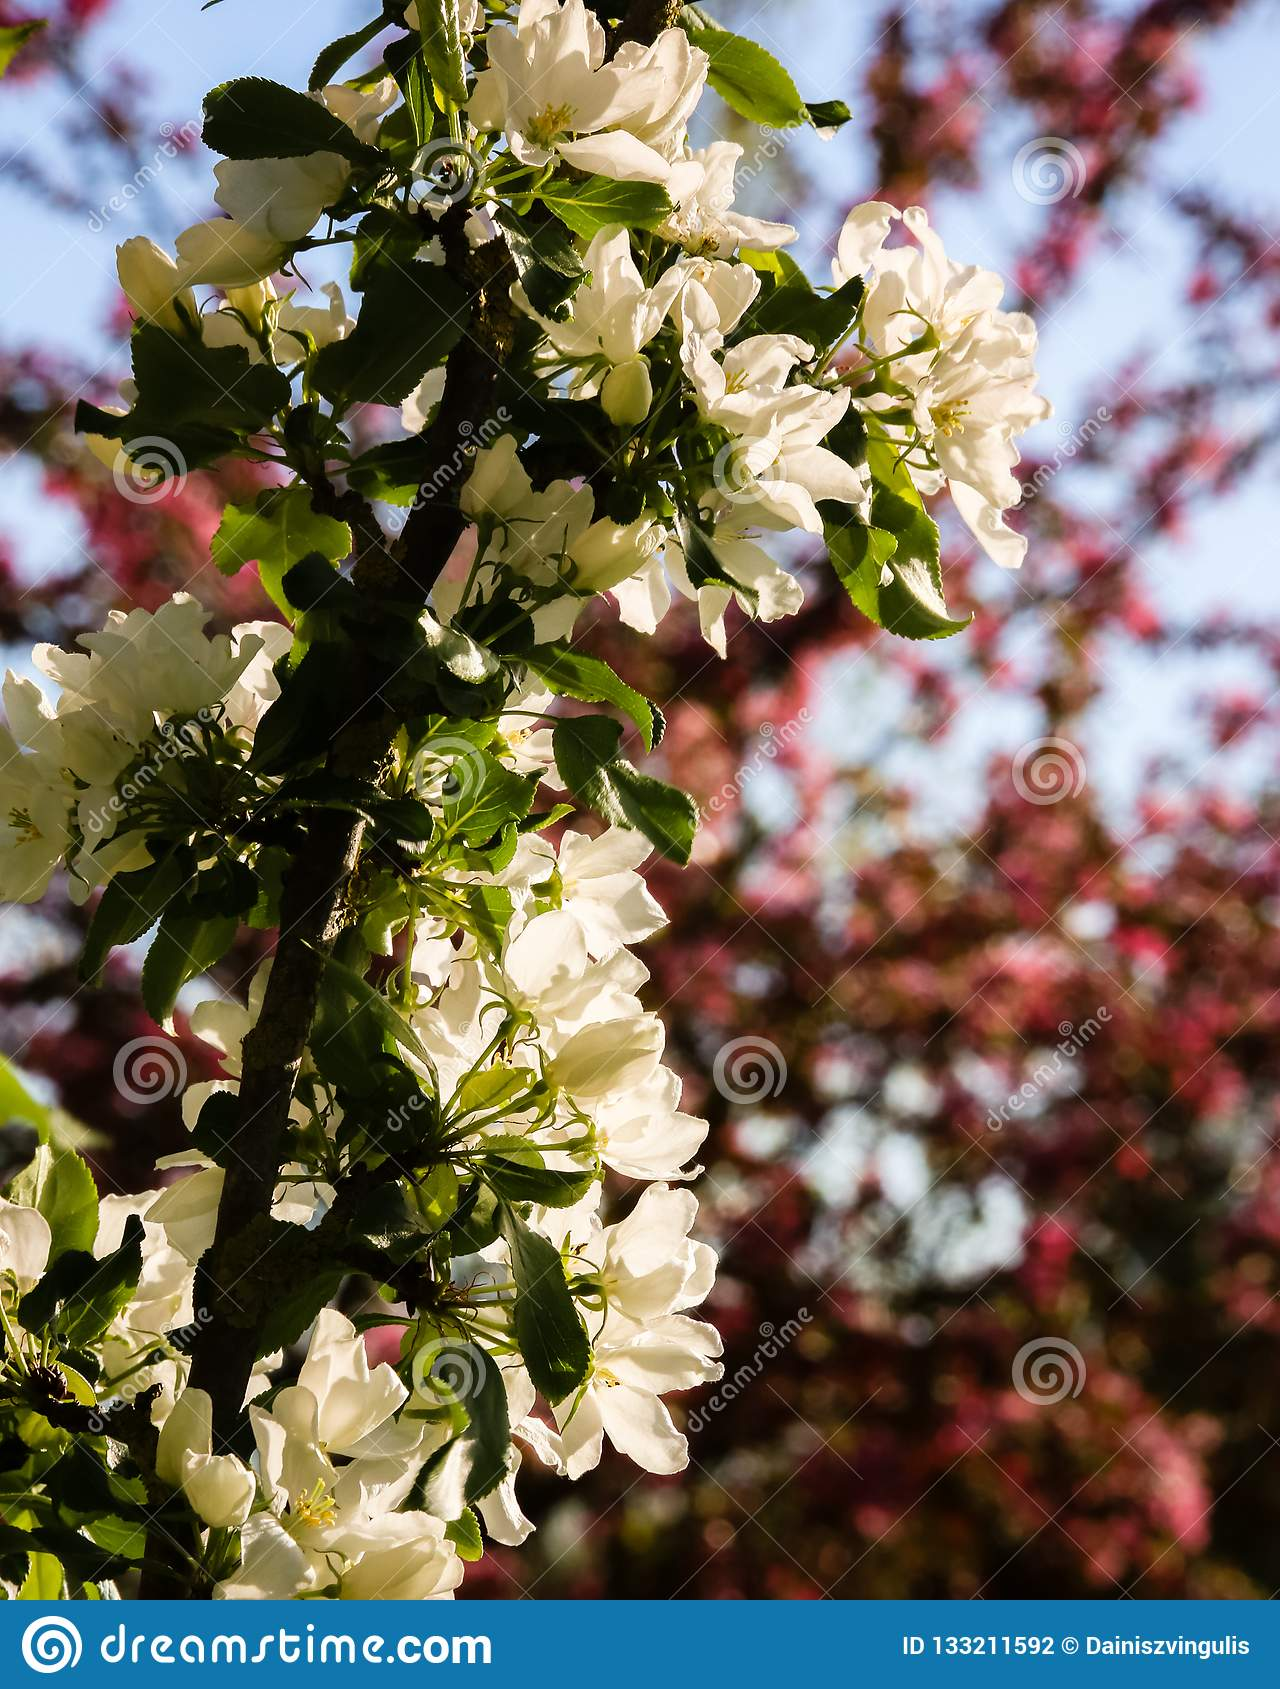 Flowering apple tree branch with white flowers